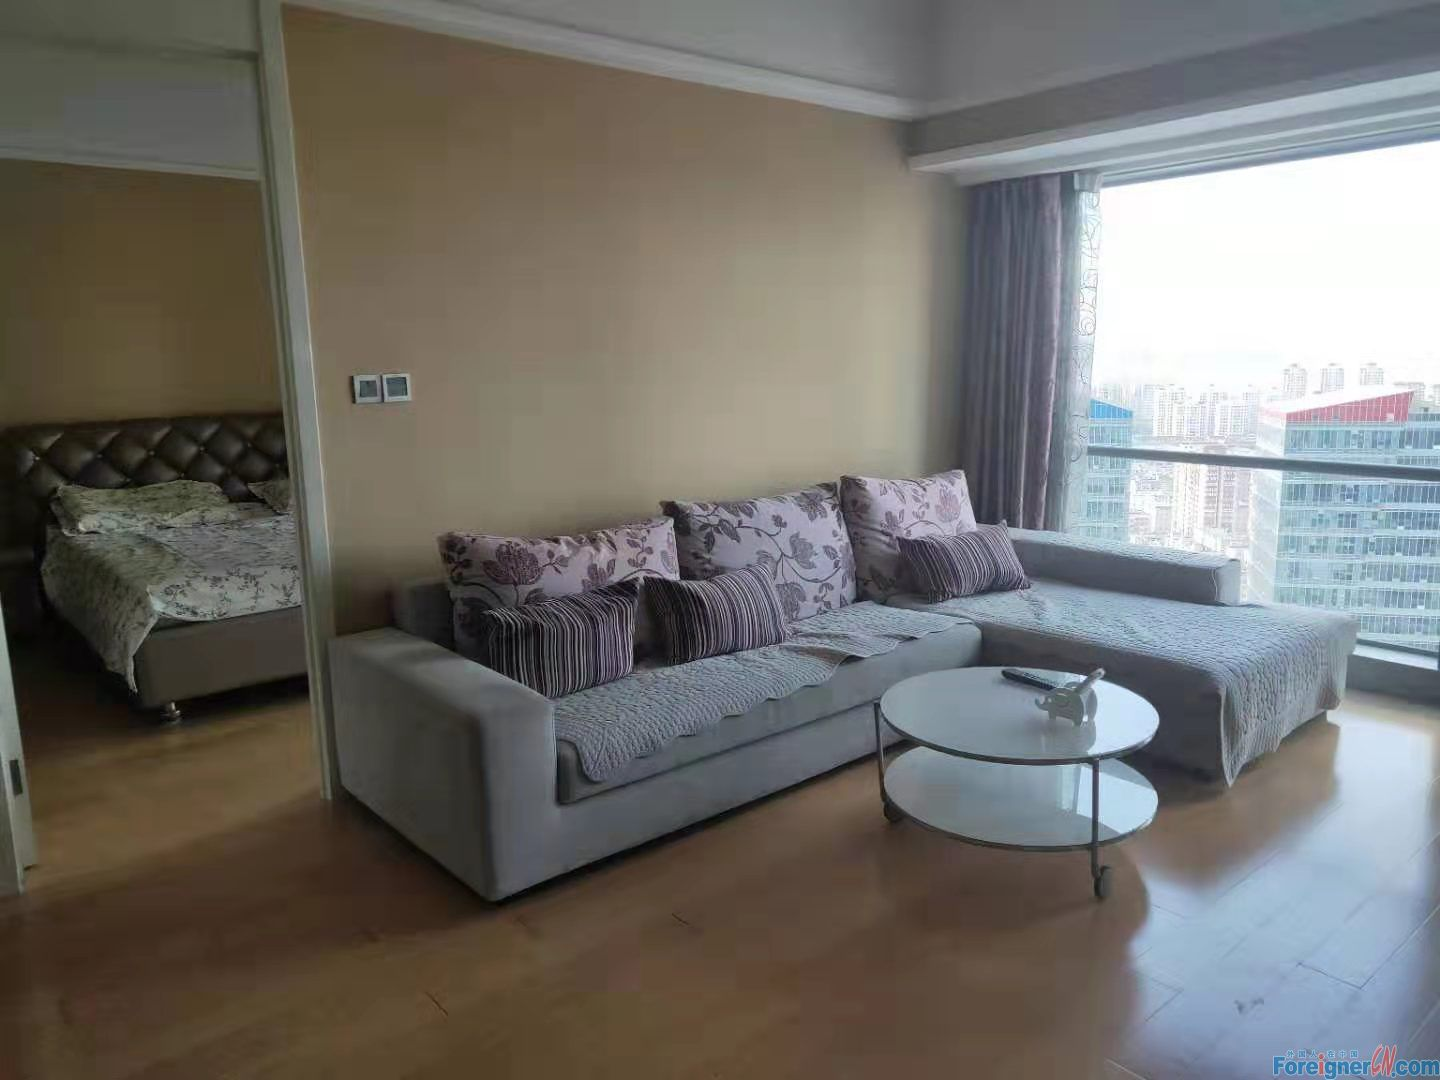 1 bed,1 living room apartment for rent in Eton,Zhongshan